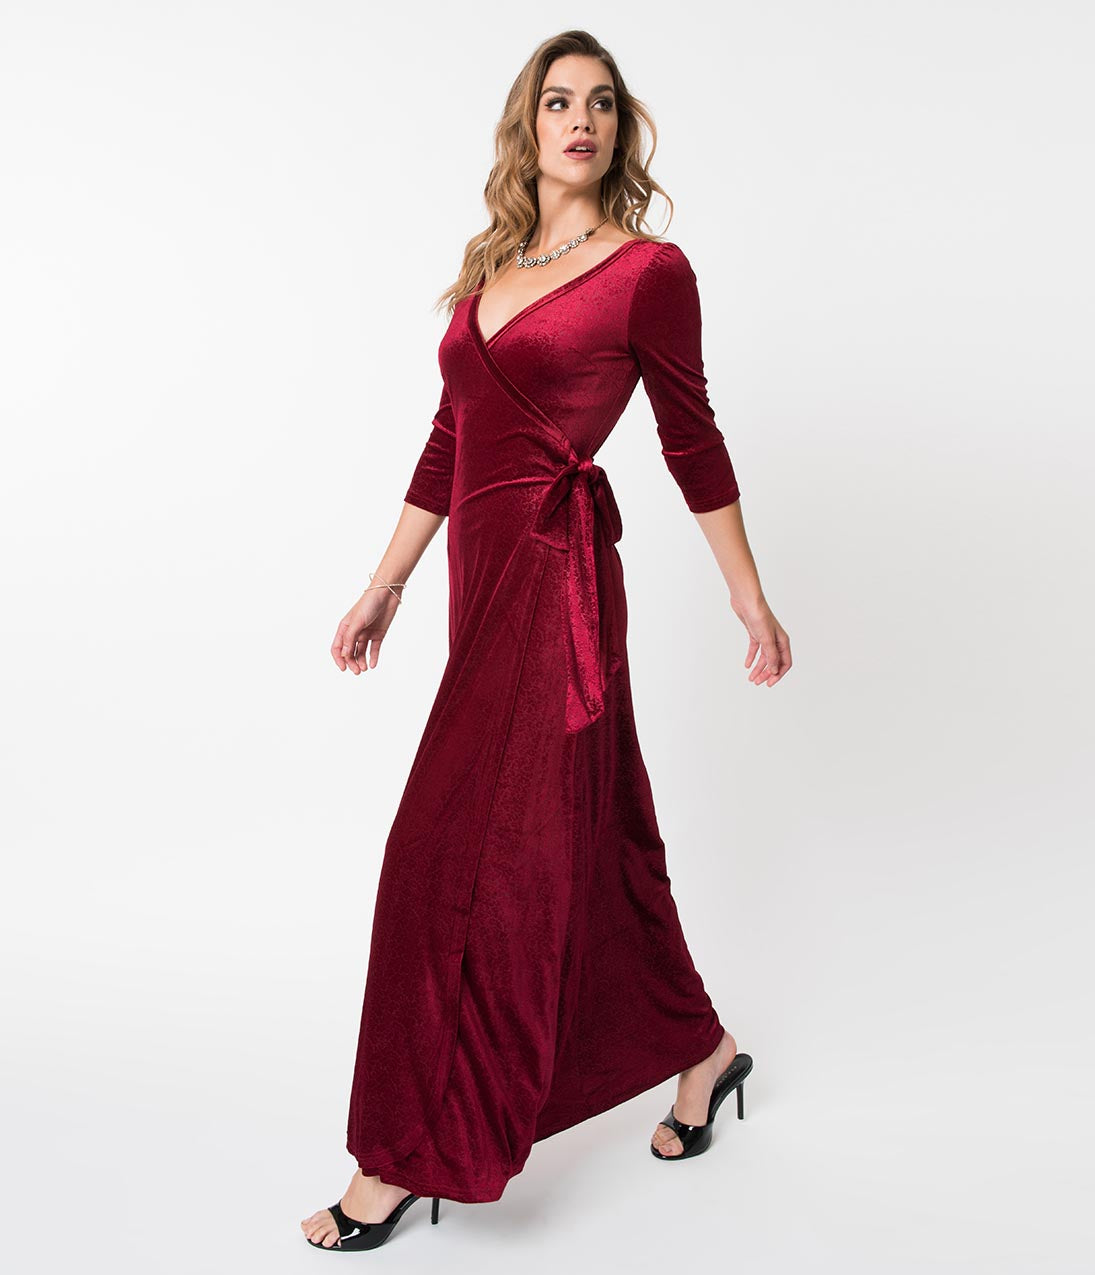 70s Prom, Formal, Evening, Party Dresses Voodoo Vixen Burgundy Crushed Floral Velvet Elizabeth Wrap Maxi Dress $57.00 AT vintagedancer.com